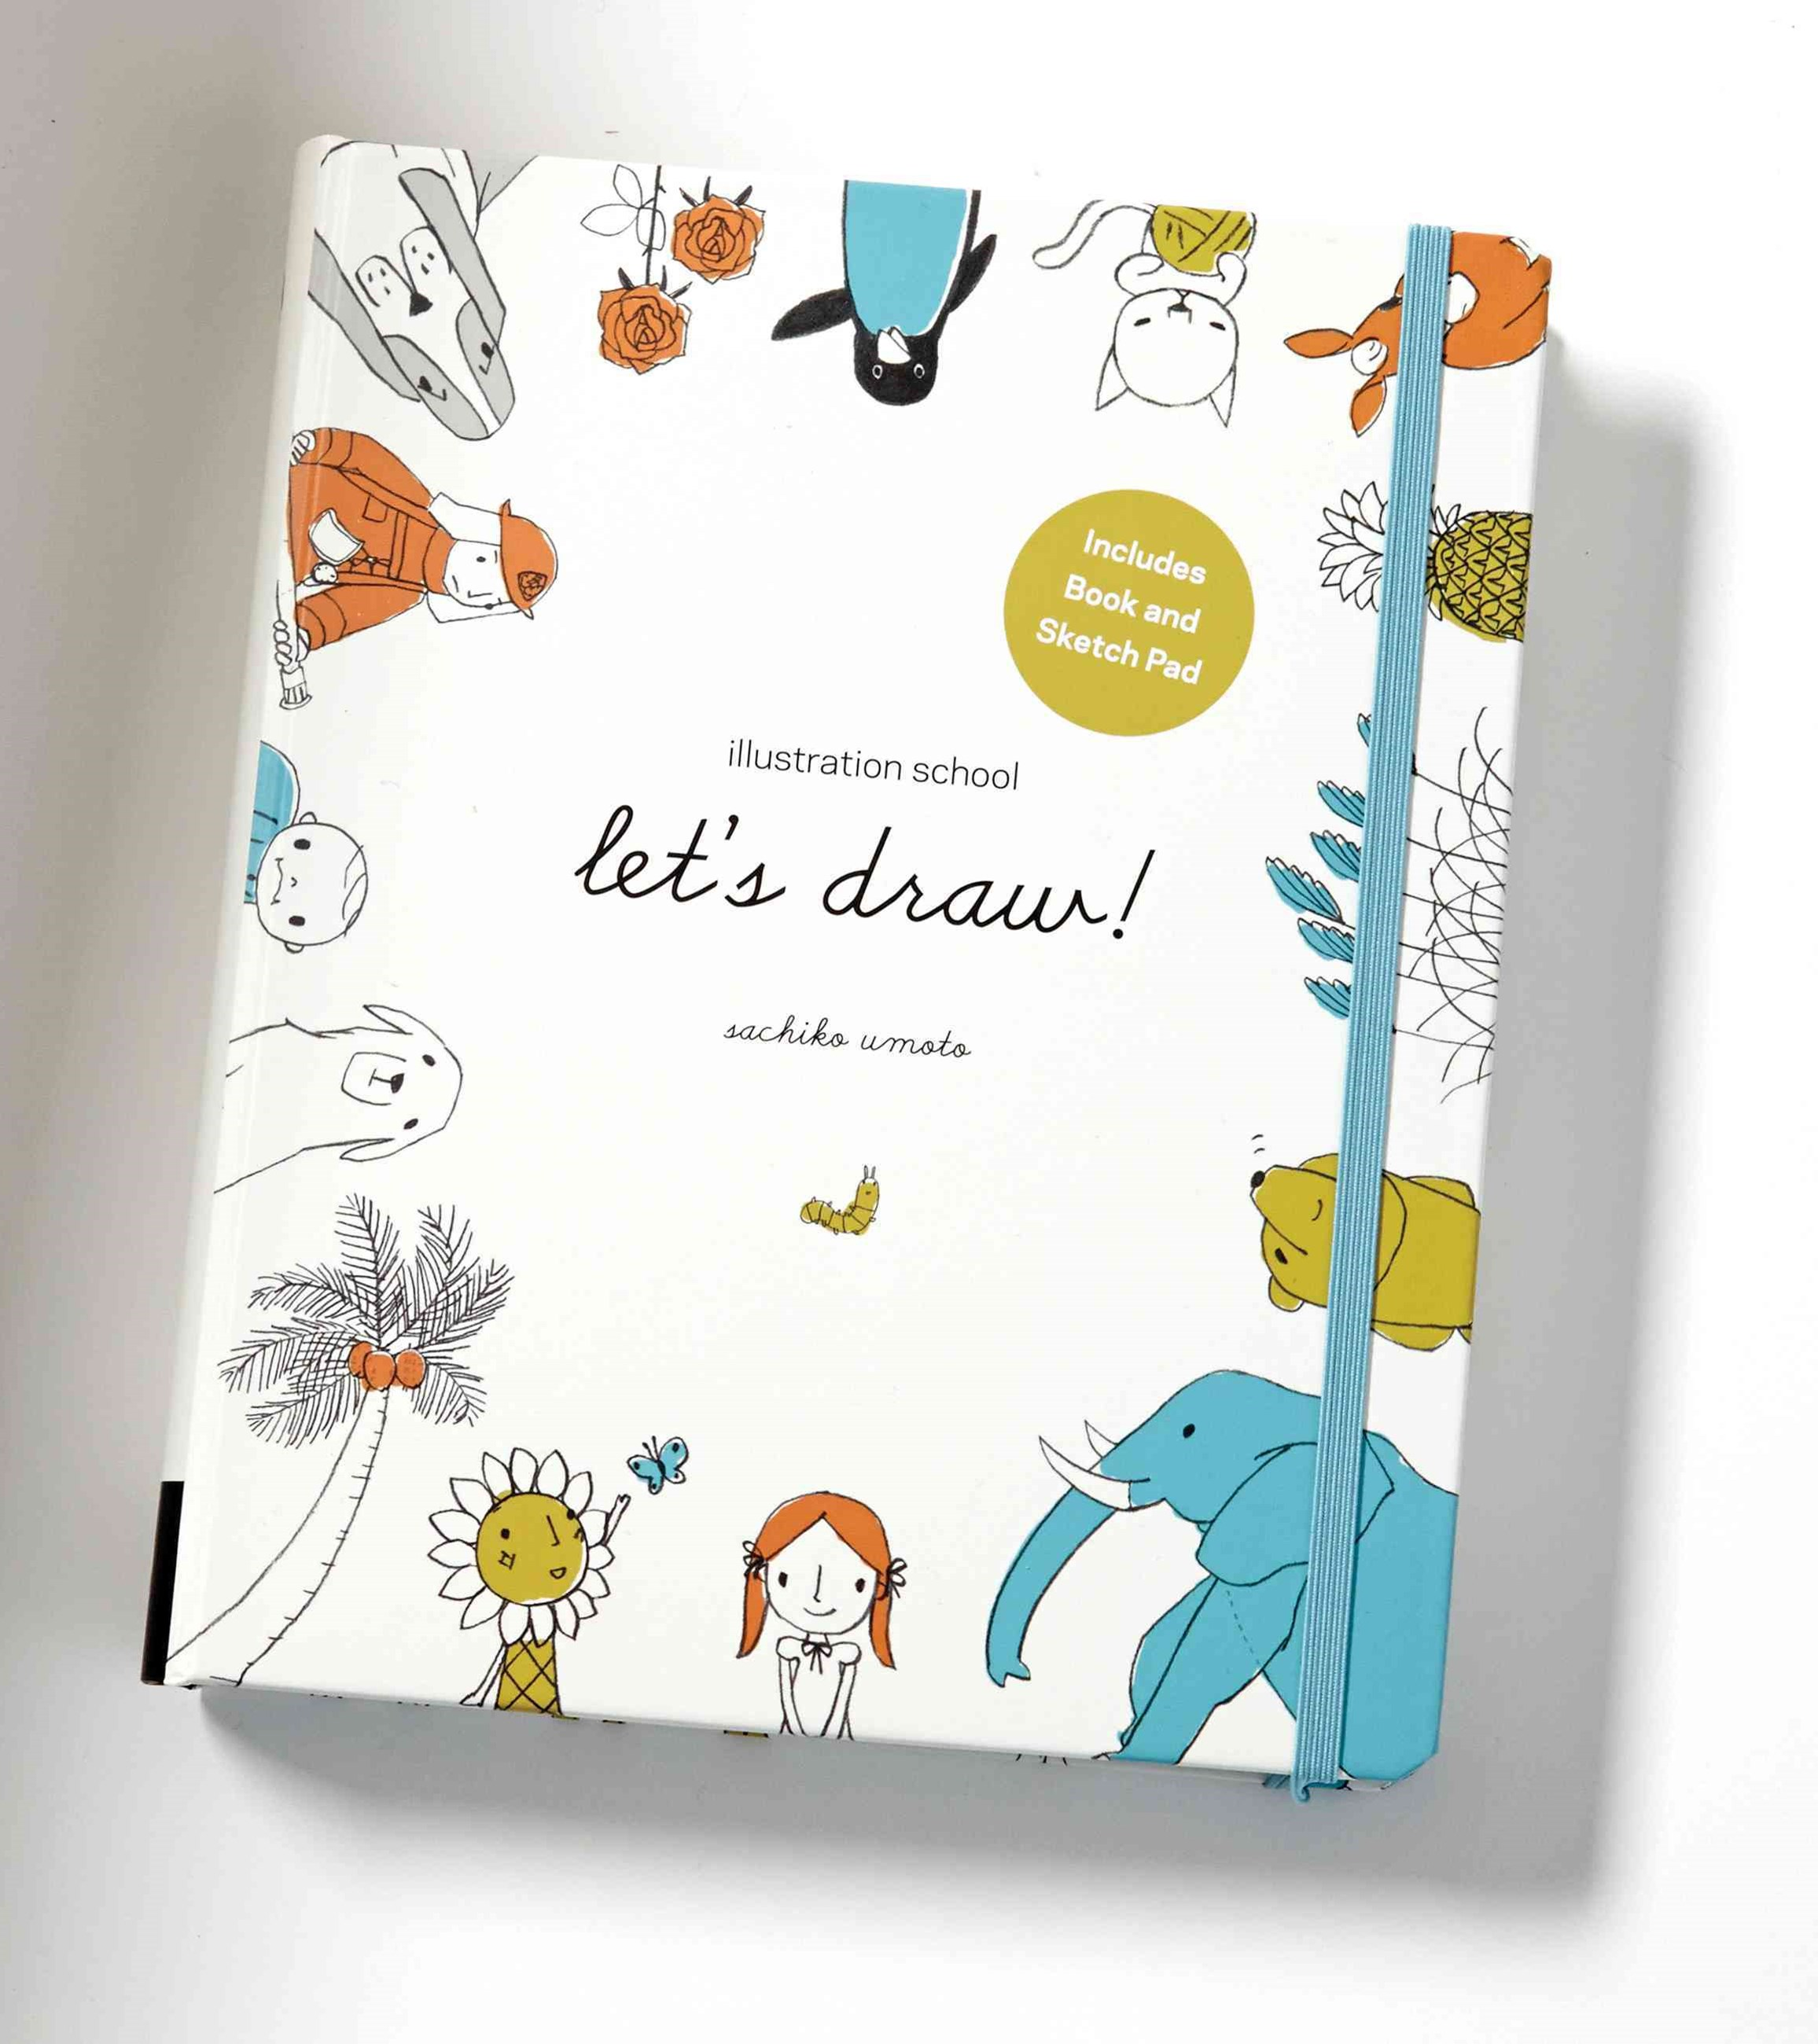 Illustration School: Let's Draw! (Includes Book and Sketch Pad)